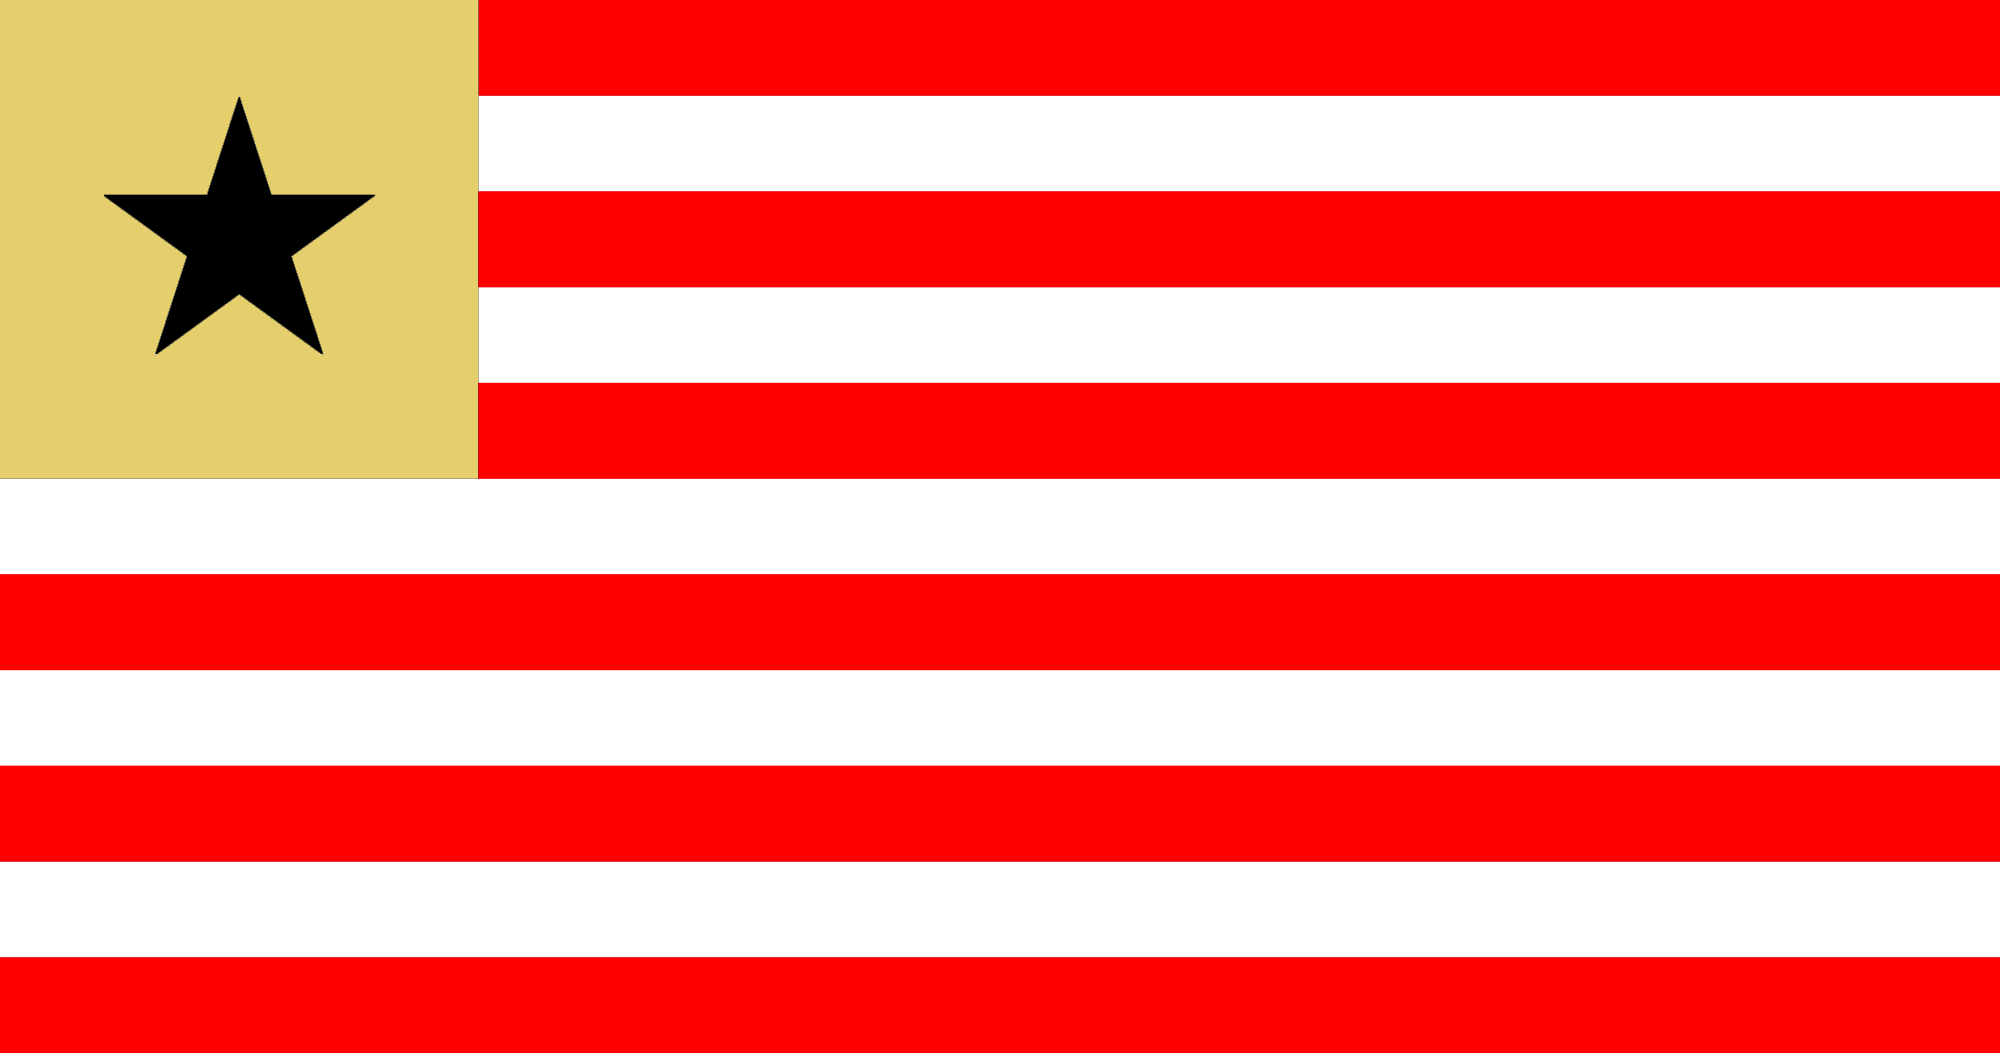 Bastardo quickly needed a flag for the new Democratic Republic of La Plata. So he mocked up Liberia's current flag and changed the colours to replicate Estudiantes de La Plata's club logo. Et voilà !